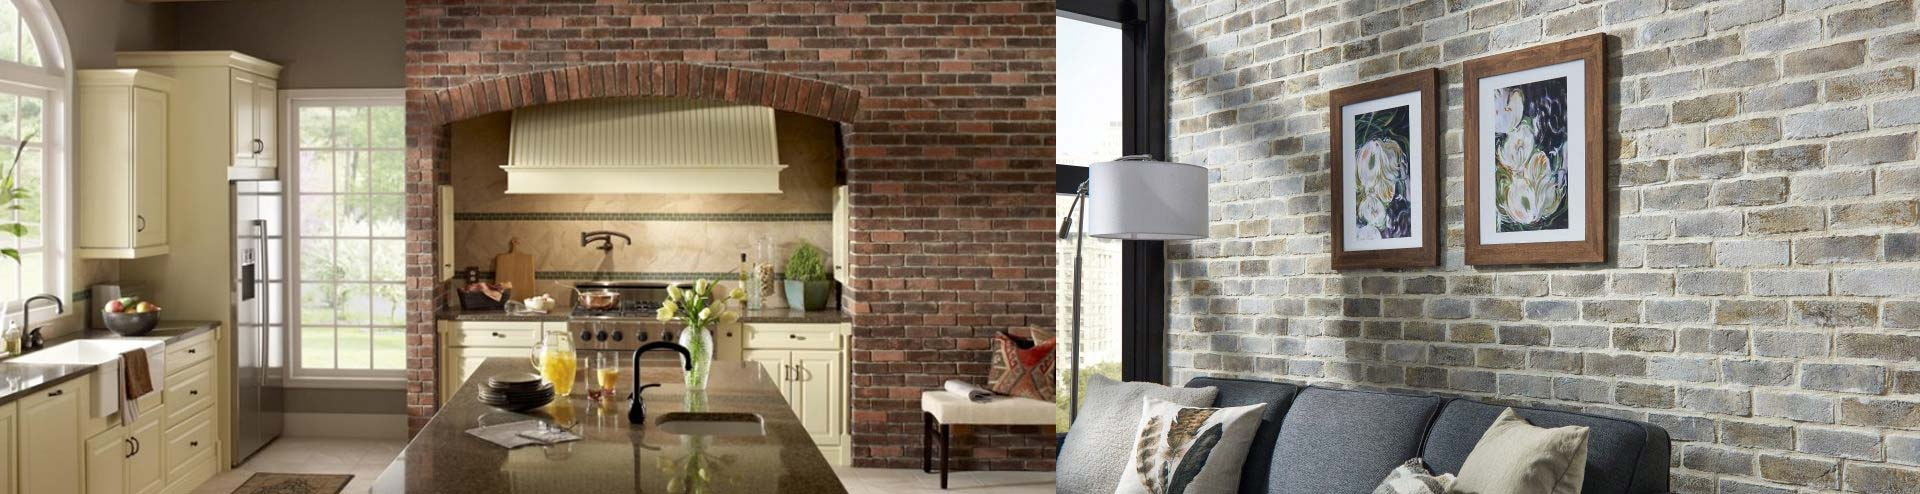 Eldorado Brick - Manufactured Brick products